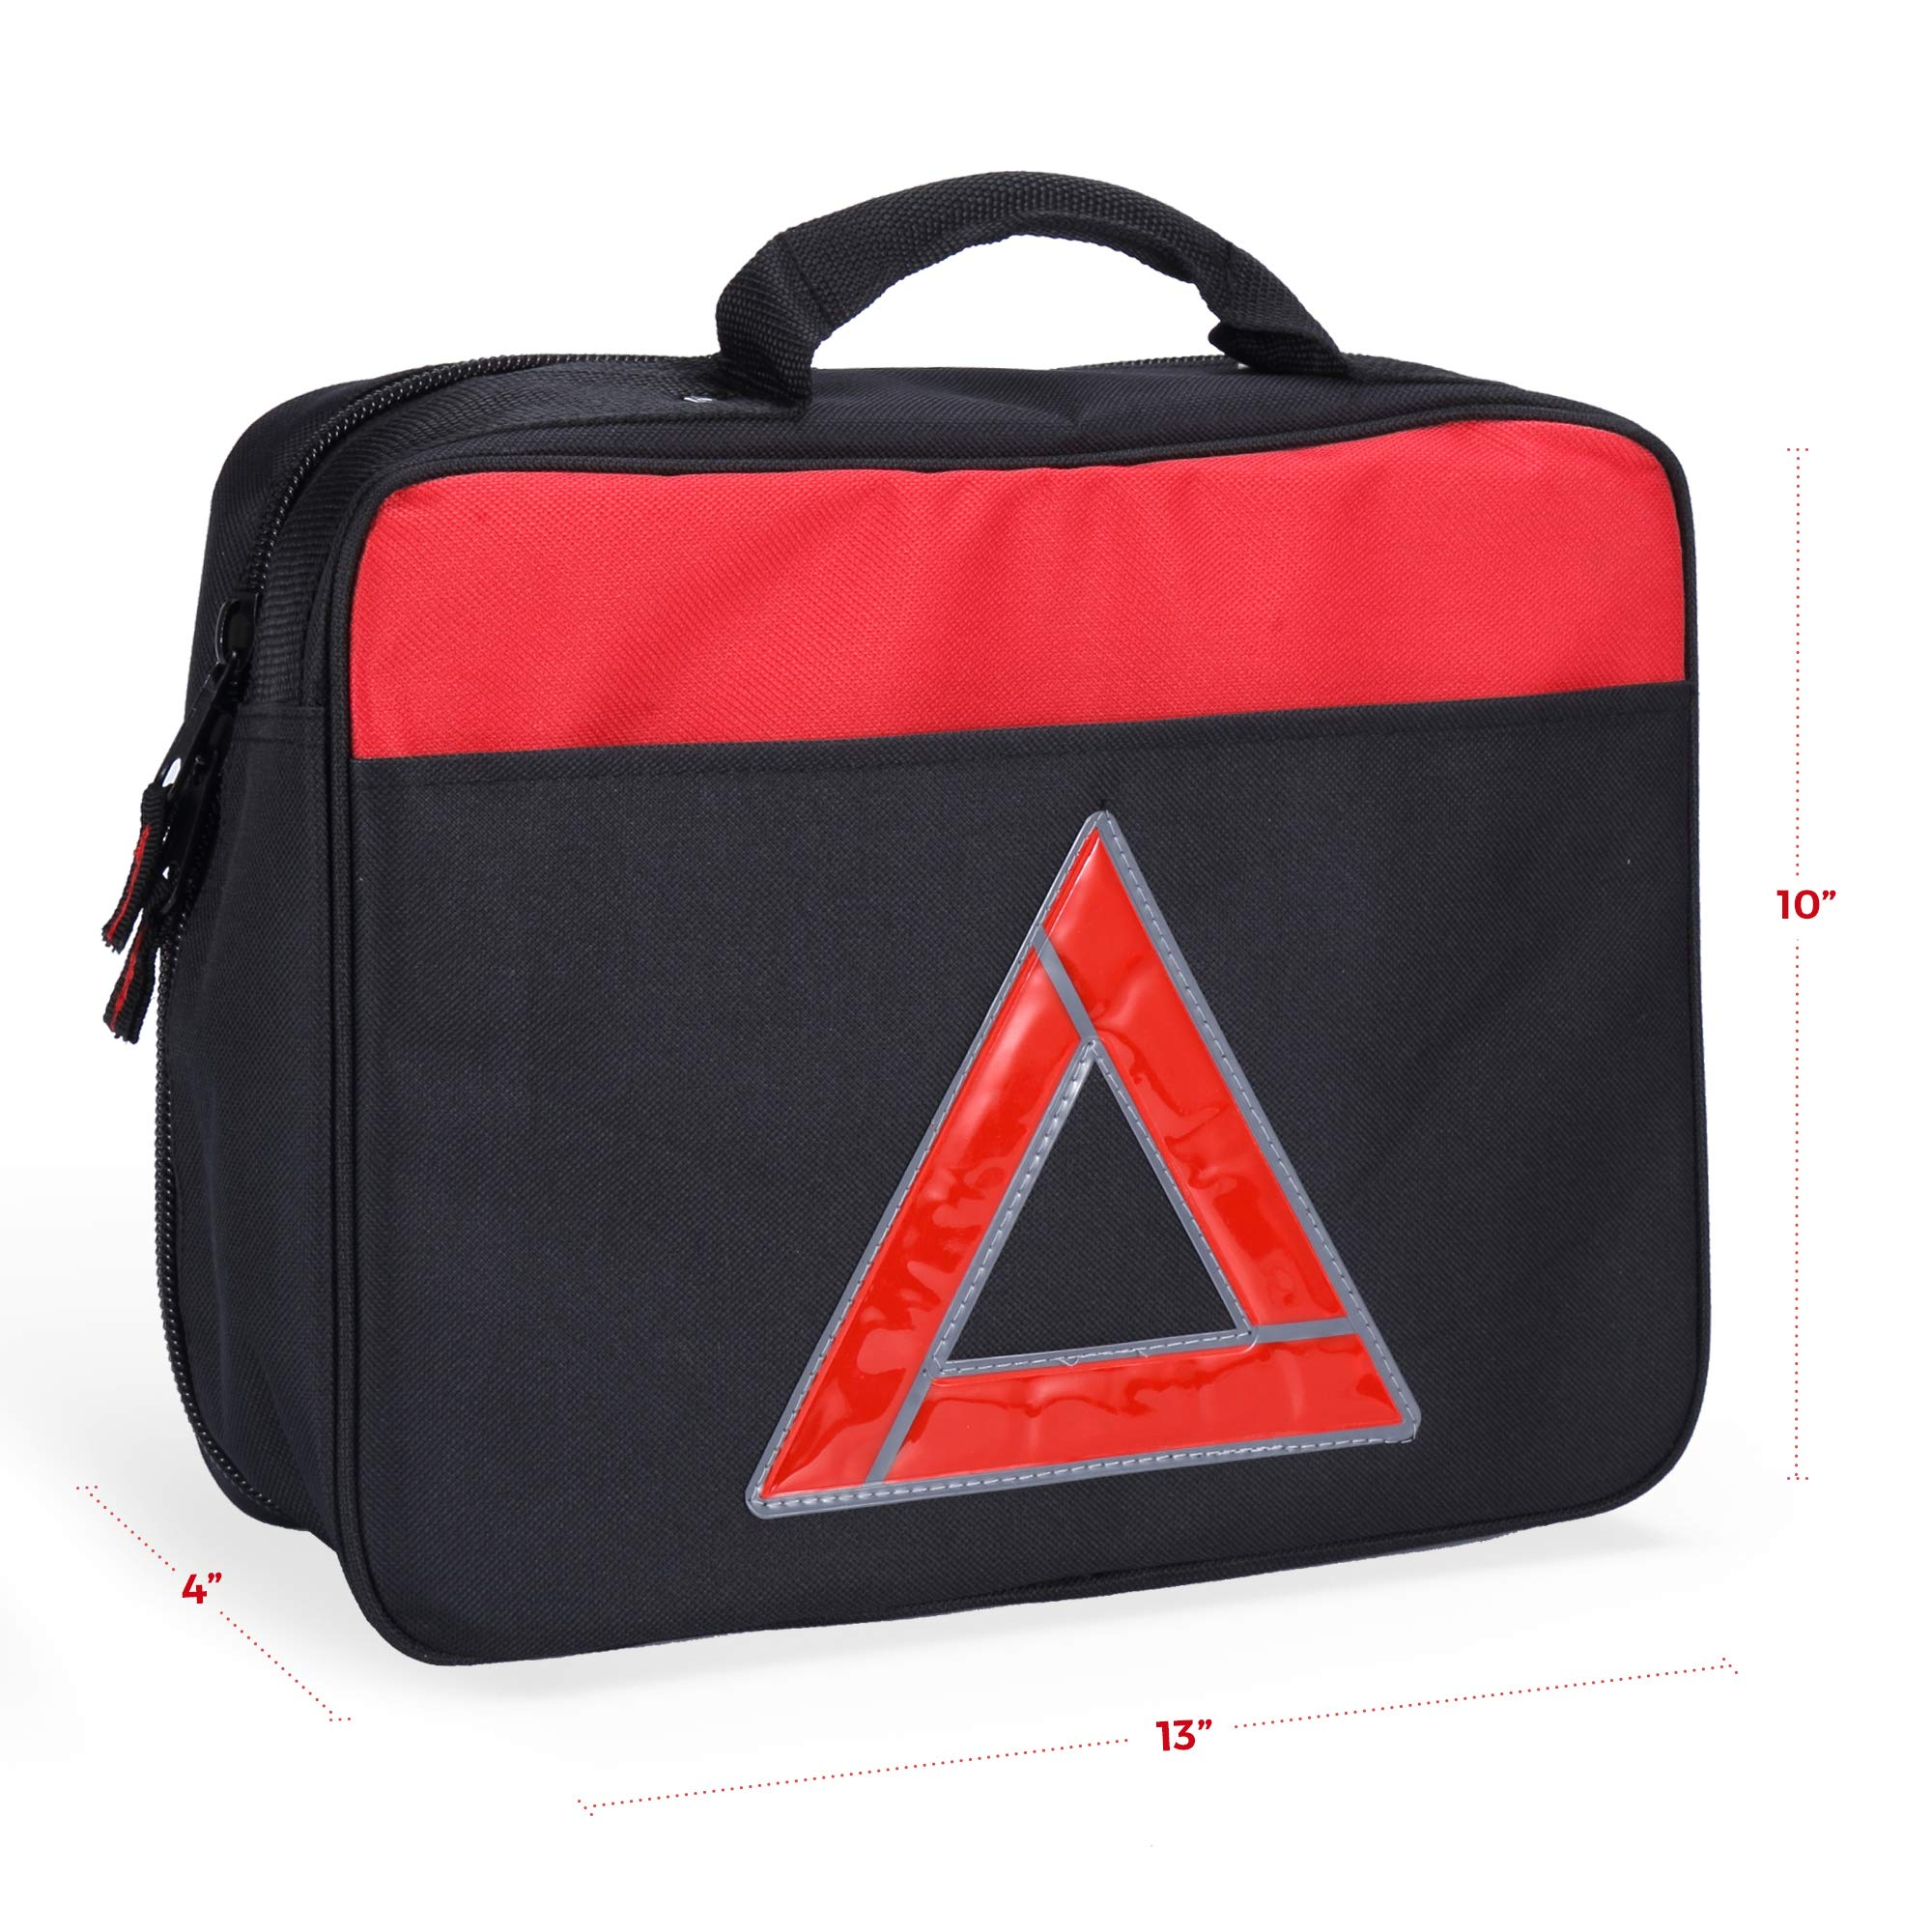 Reflective Safety Triangle and More Truck First Aid Kit Case Camper Ideal Winter Accessory for Your car Thrive Roadside Assistance Auto Emergency Kit Tools Contains Jumper Cables